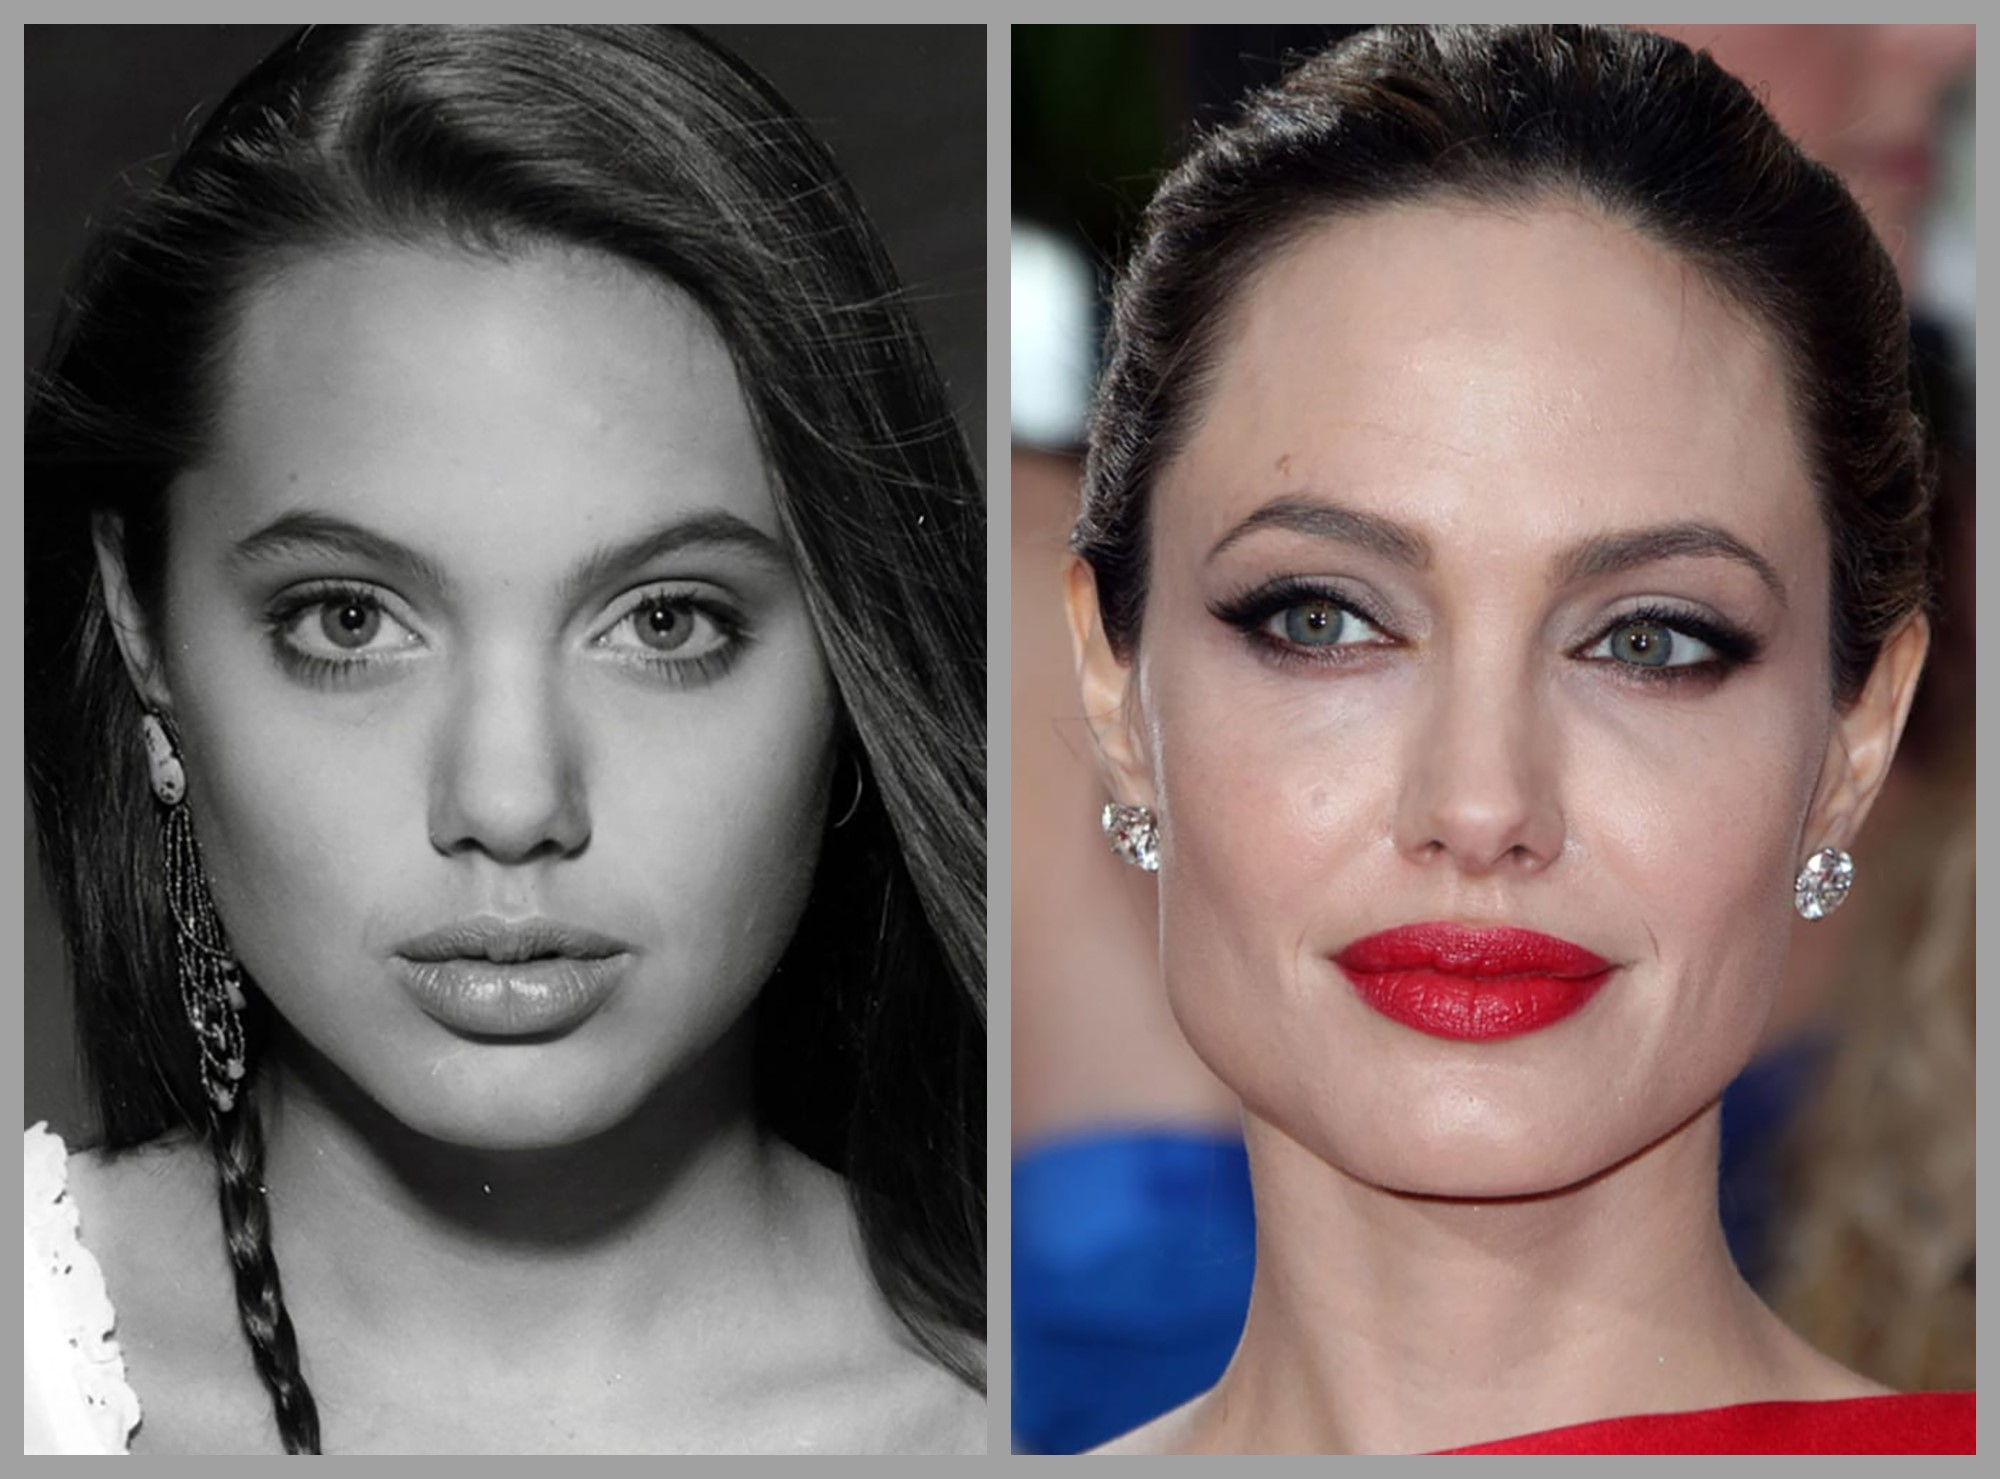 Angelina Jolie - Before and After Rhinoplasty Treatment